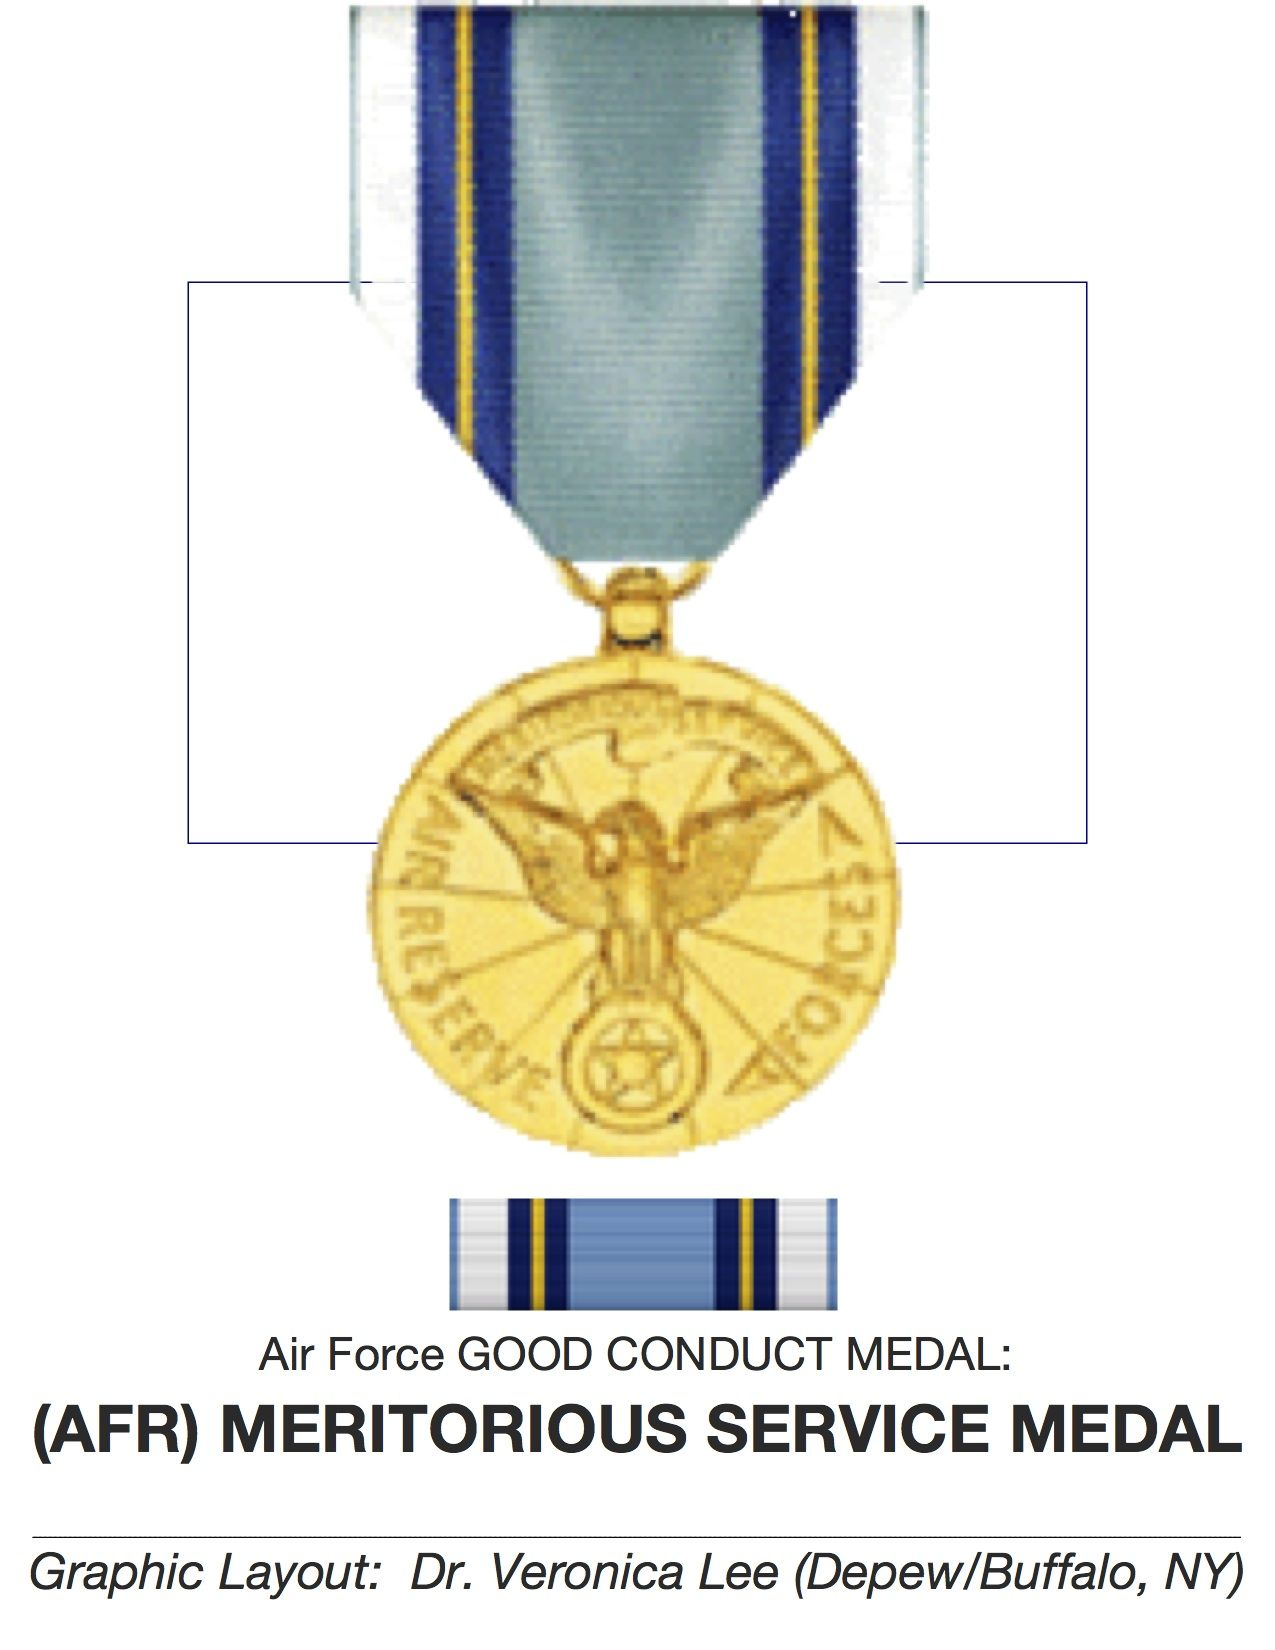 U.S. AIR FORCE RESERVE Good Conduct Medal ♥ ESTABLISHED as